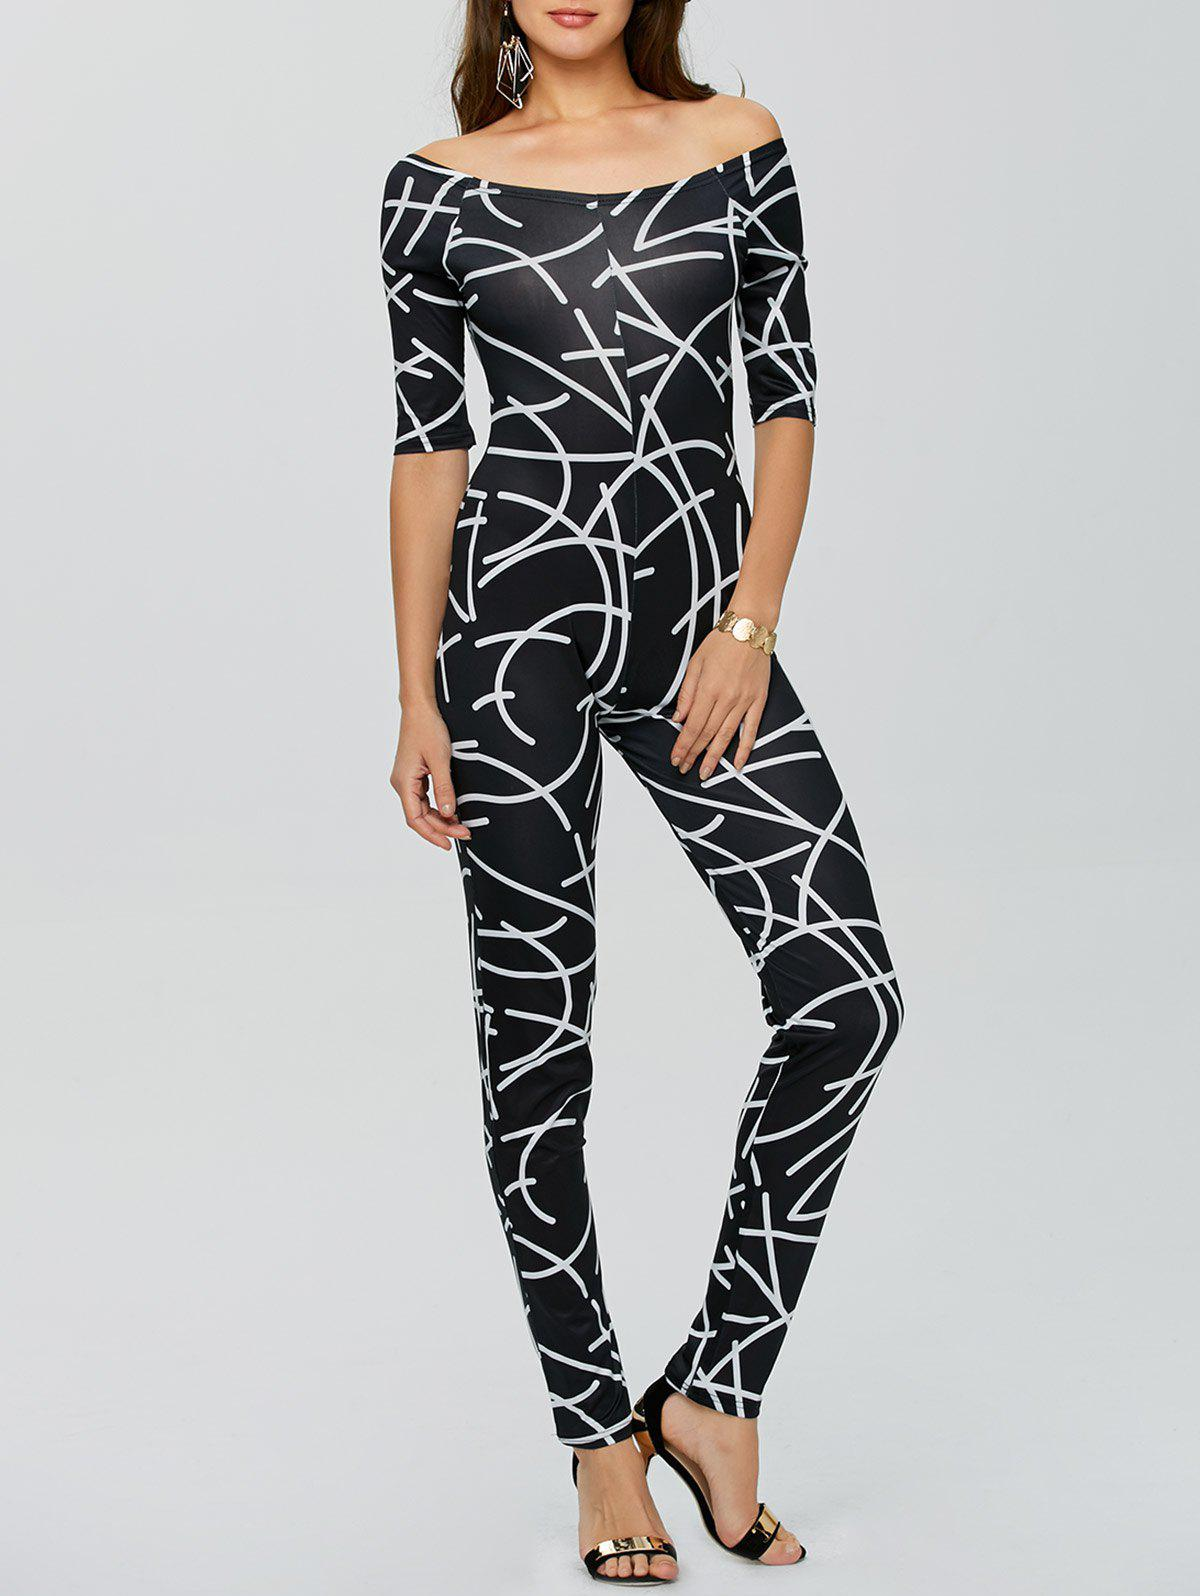 Off The Shoulder Printed Bodycon Jumpsuit - BLACK S